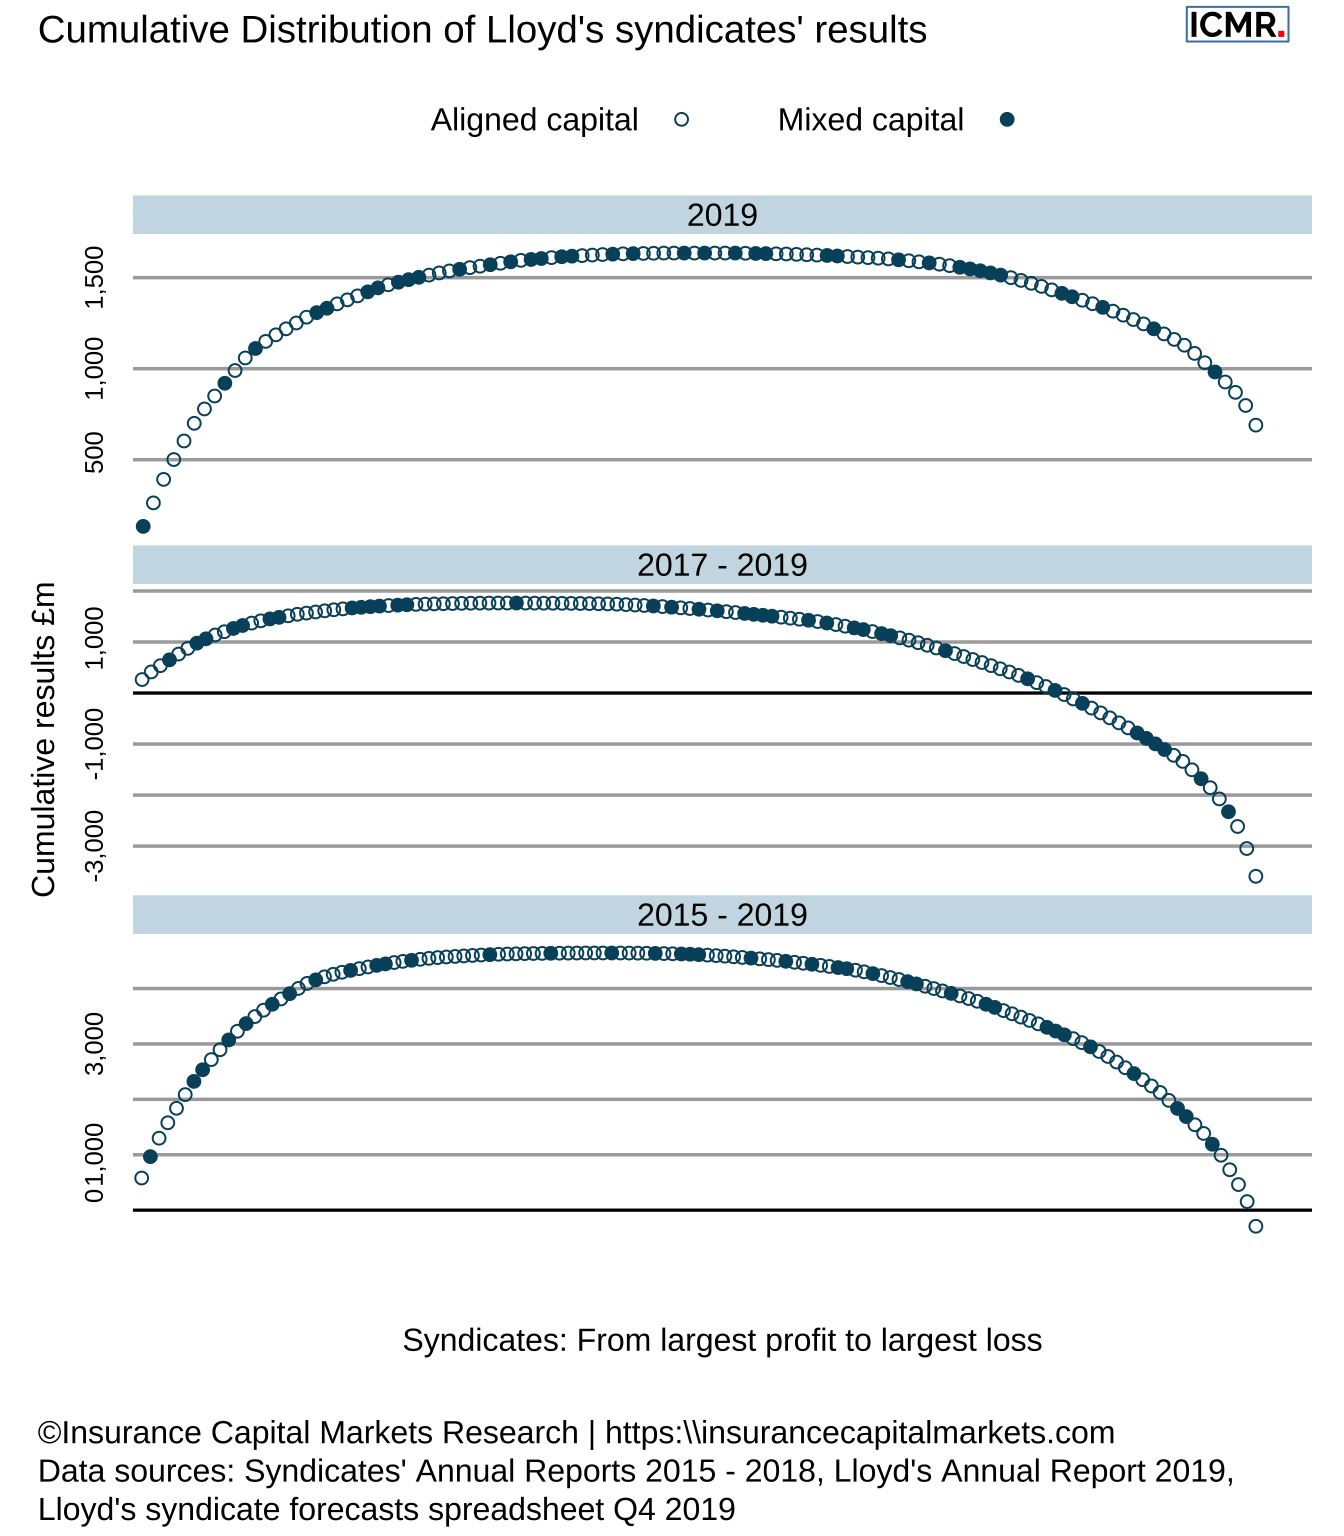 Whale charts of Lloyd's results, showing the cumulative results from the most profitable to the most loss making syndicate, for the periods of 2019, 2017 - 2019 and 2015 - 2019